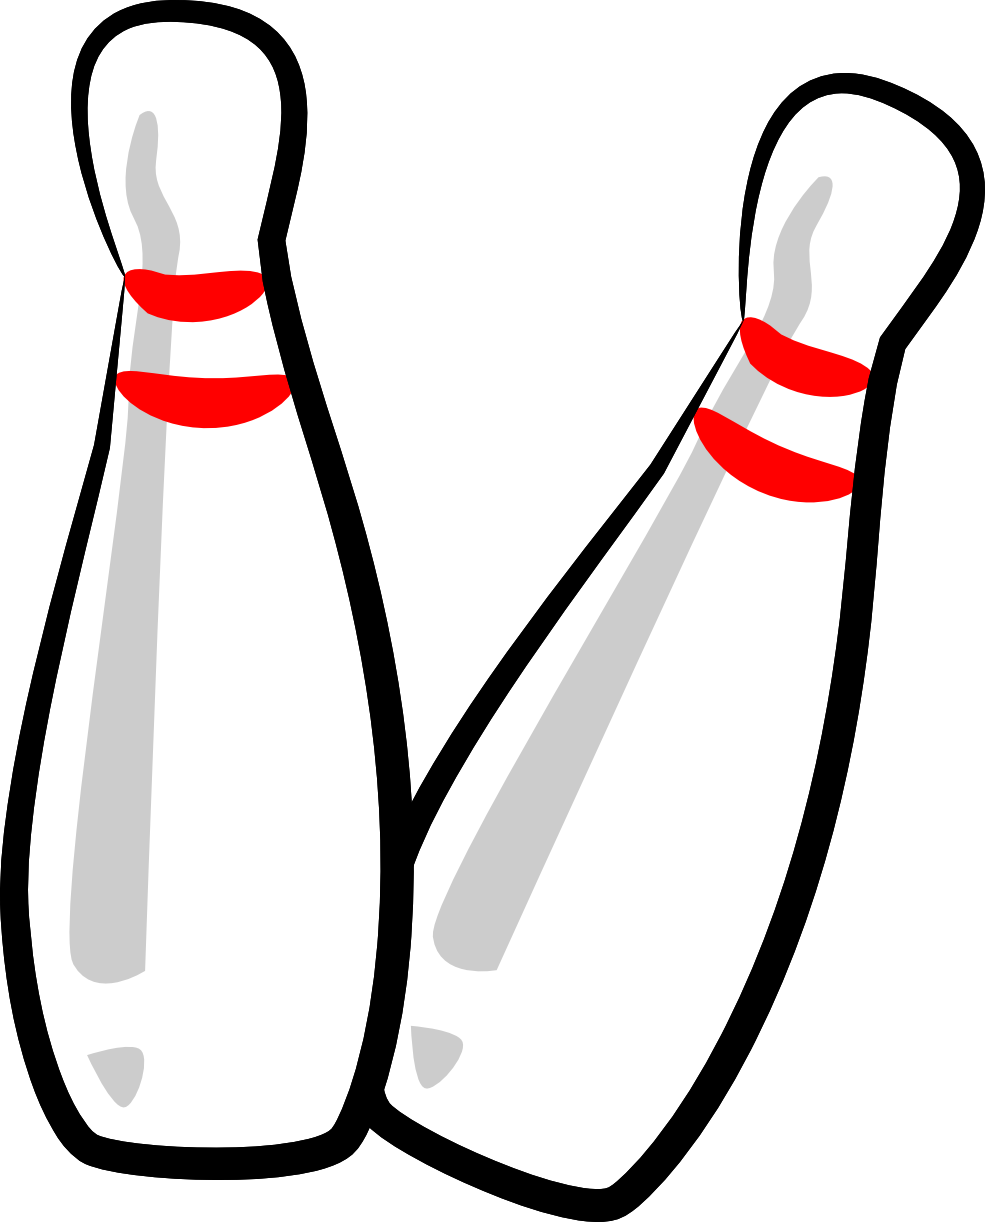 Bowling pin wearing crown clipart banner download 28+ Collection of Bowling Pin Clipart Images | High quality, free ... banner download